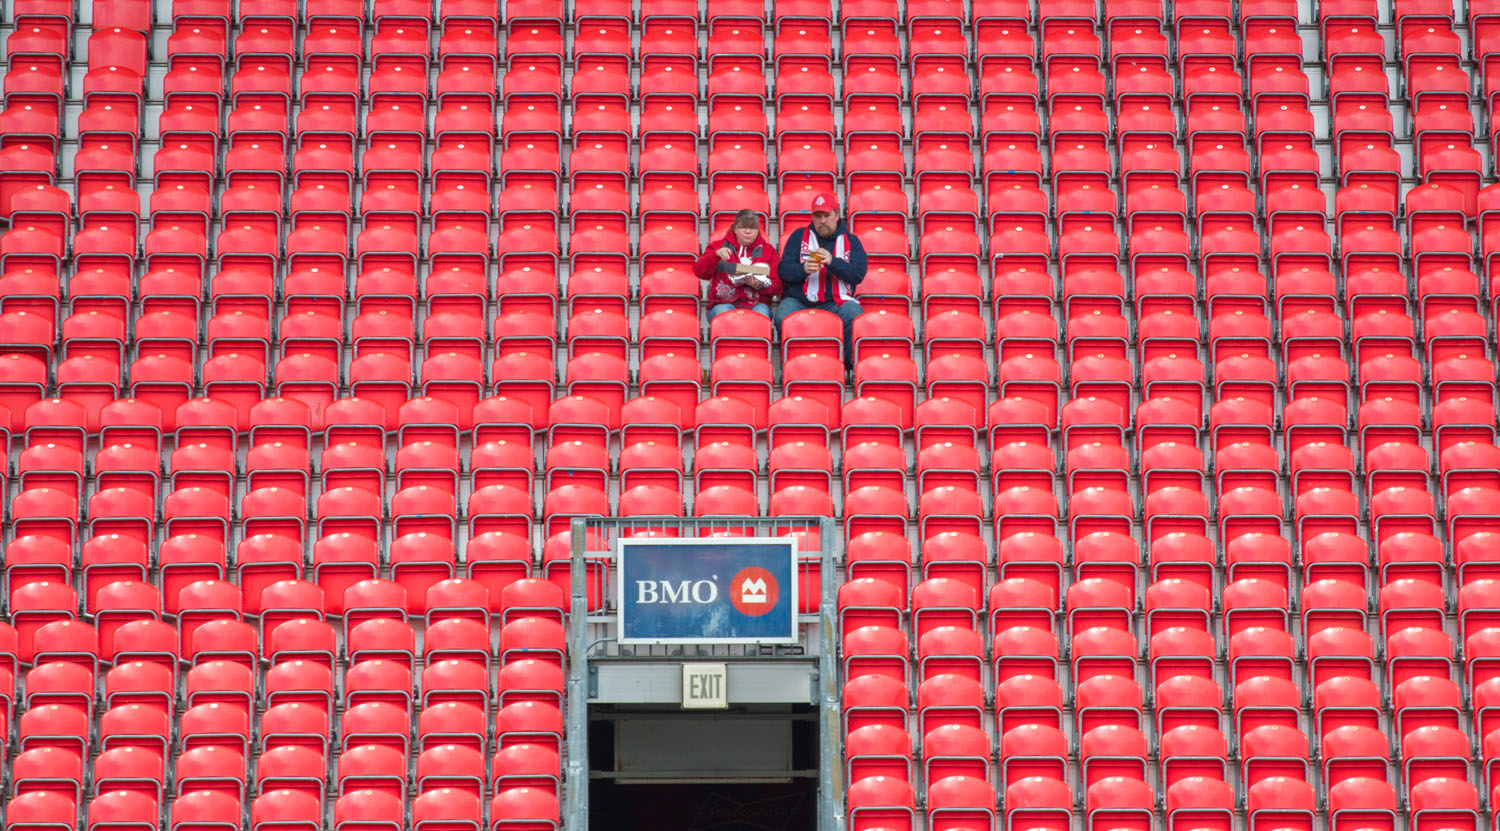 A couple enjoying some in stadium food before the Toronto FC v Minnesota United match on May 13, 2017 at BMO Field in Toronto, Canada. Image by Dennis Marciniak of denMAR Media.